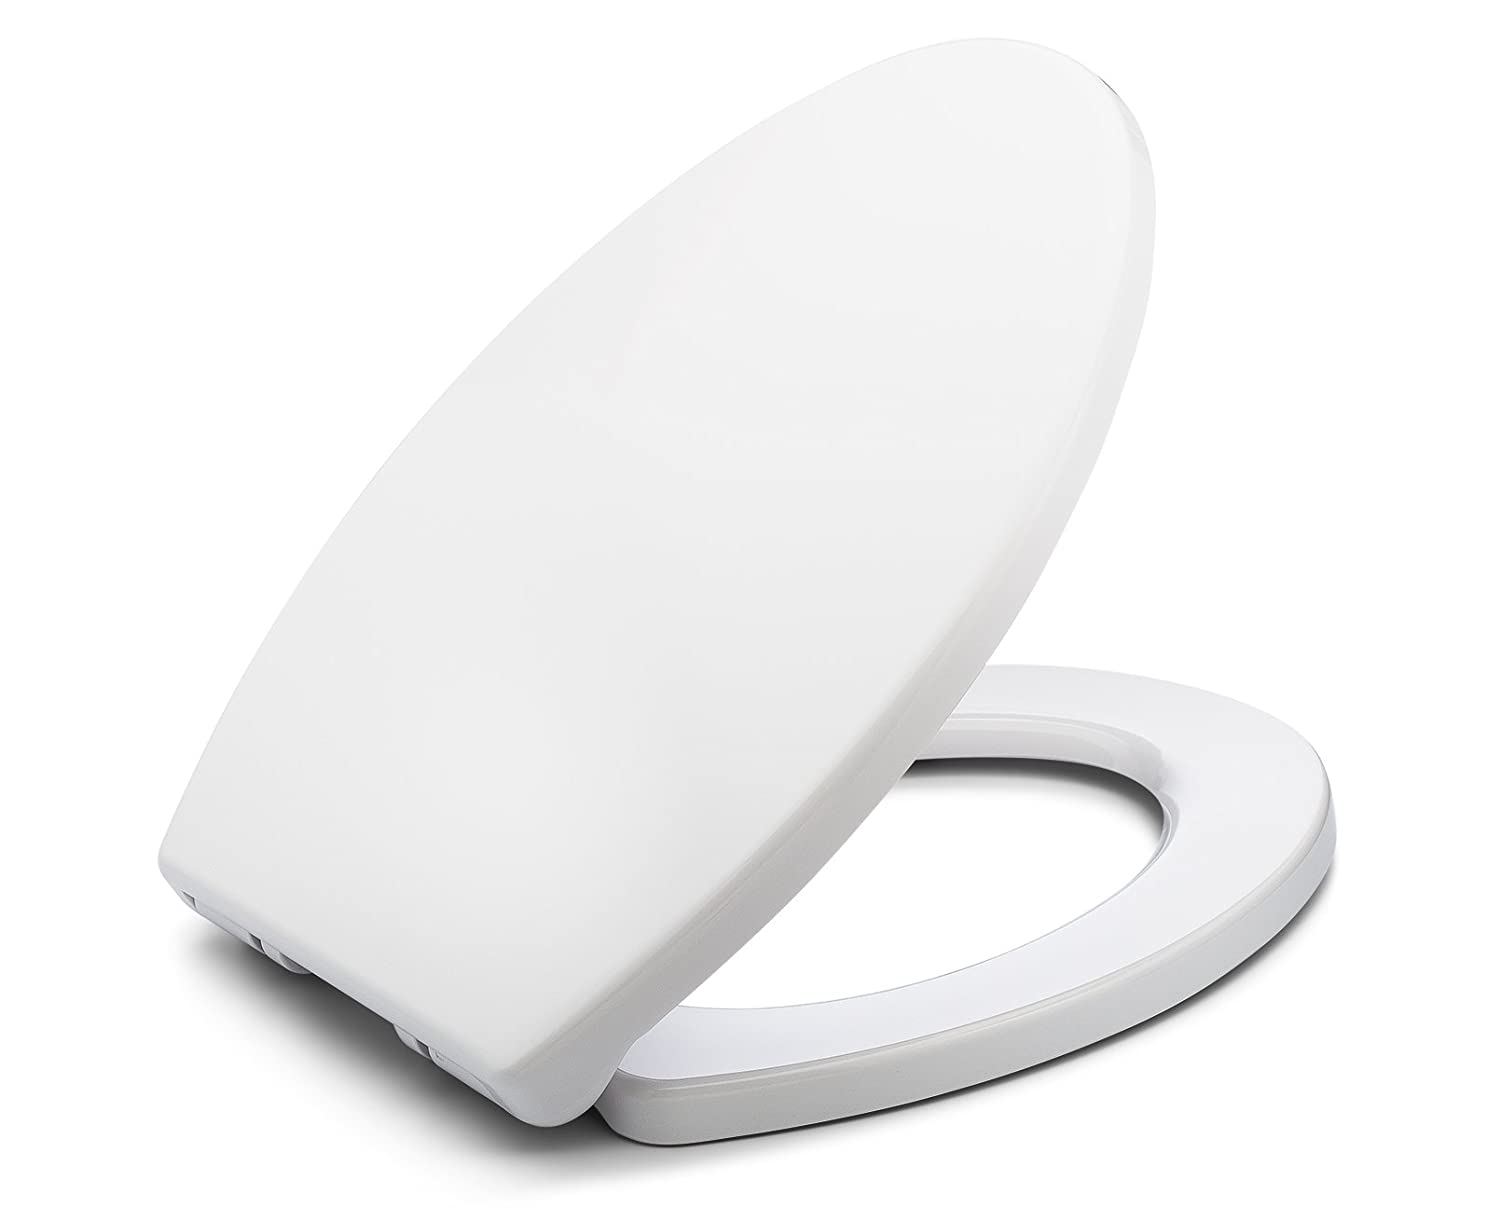 Outstanding Bath Royale Br237 00 Mastersuite Elongated Toilet Seat With Cover White Slow Close Quick Release For Easy Cleaning Spiritservingveterans Wood Chair Design Ideas Spiritservingveteransorg